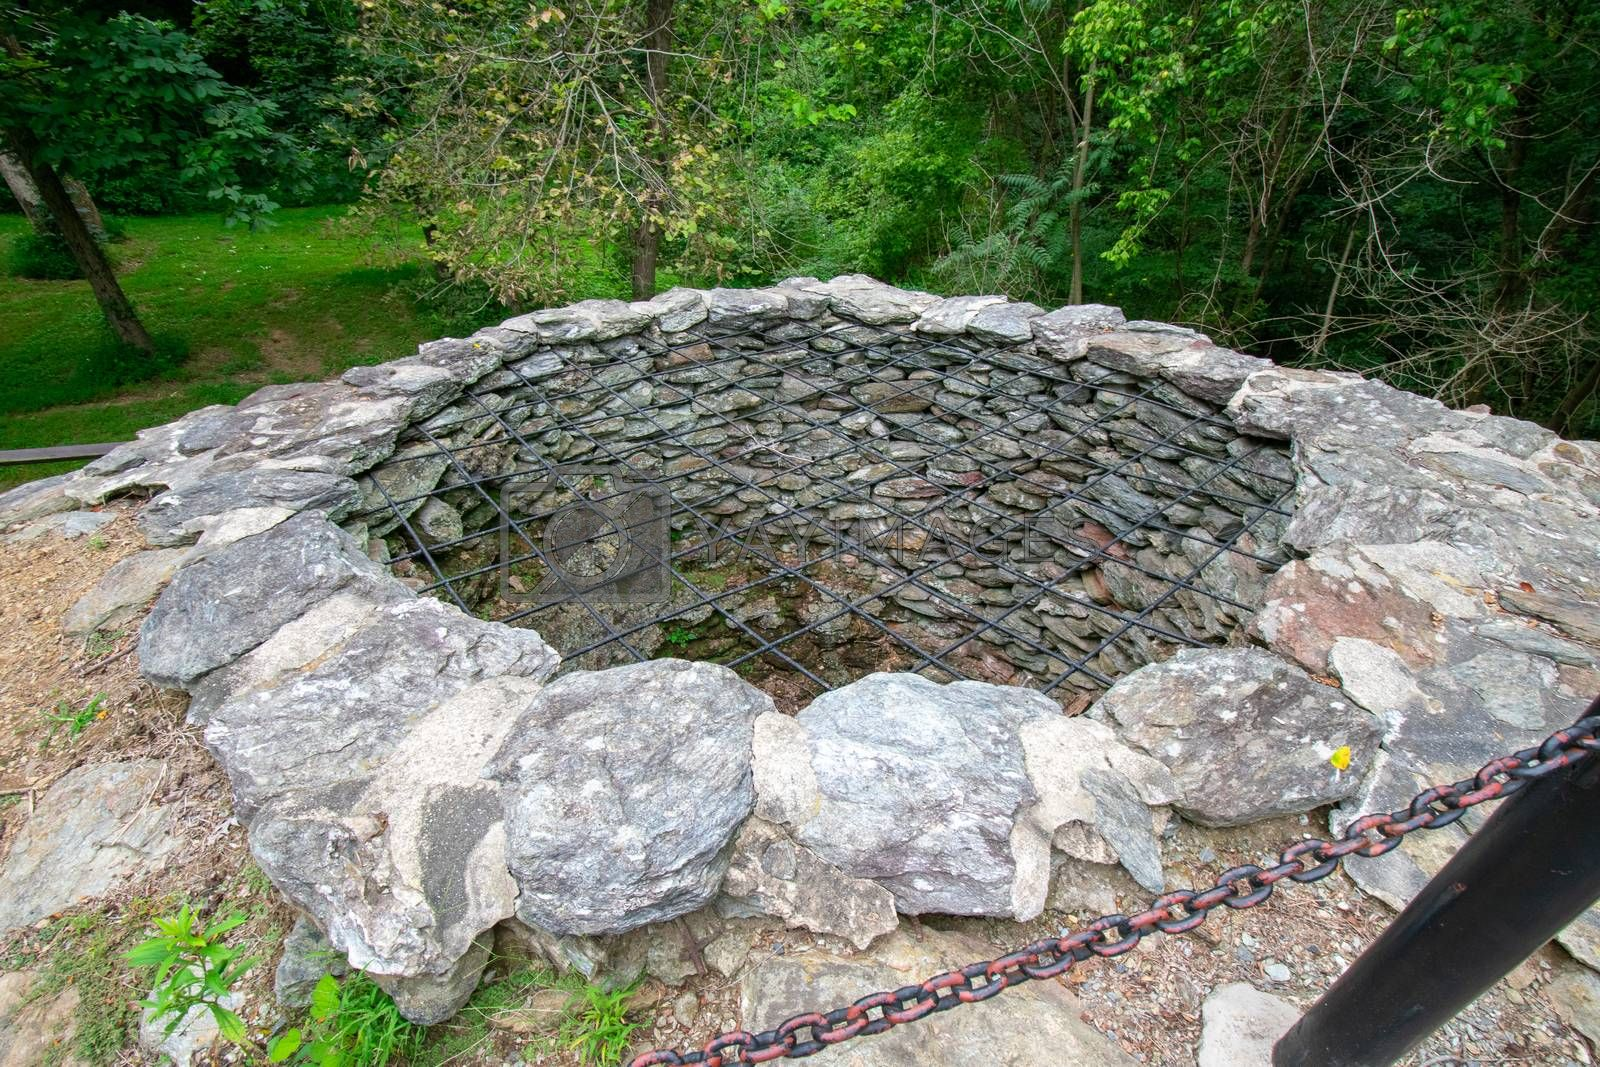 A Large Hole With Cobblestone Walls and a Metal Covering Over the Top at the Historic Lock 12 in Pennsylvania